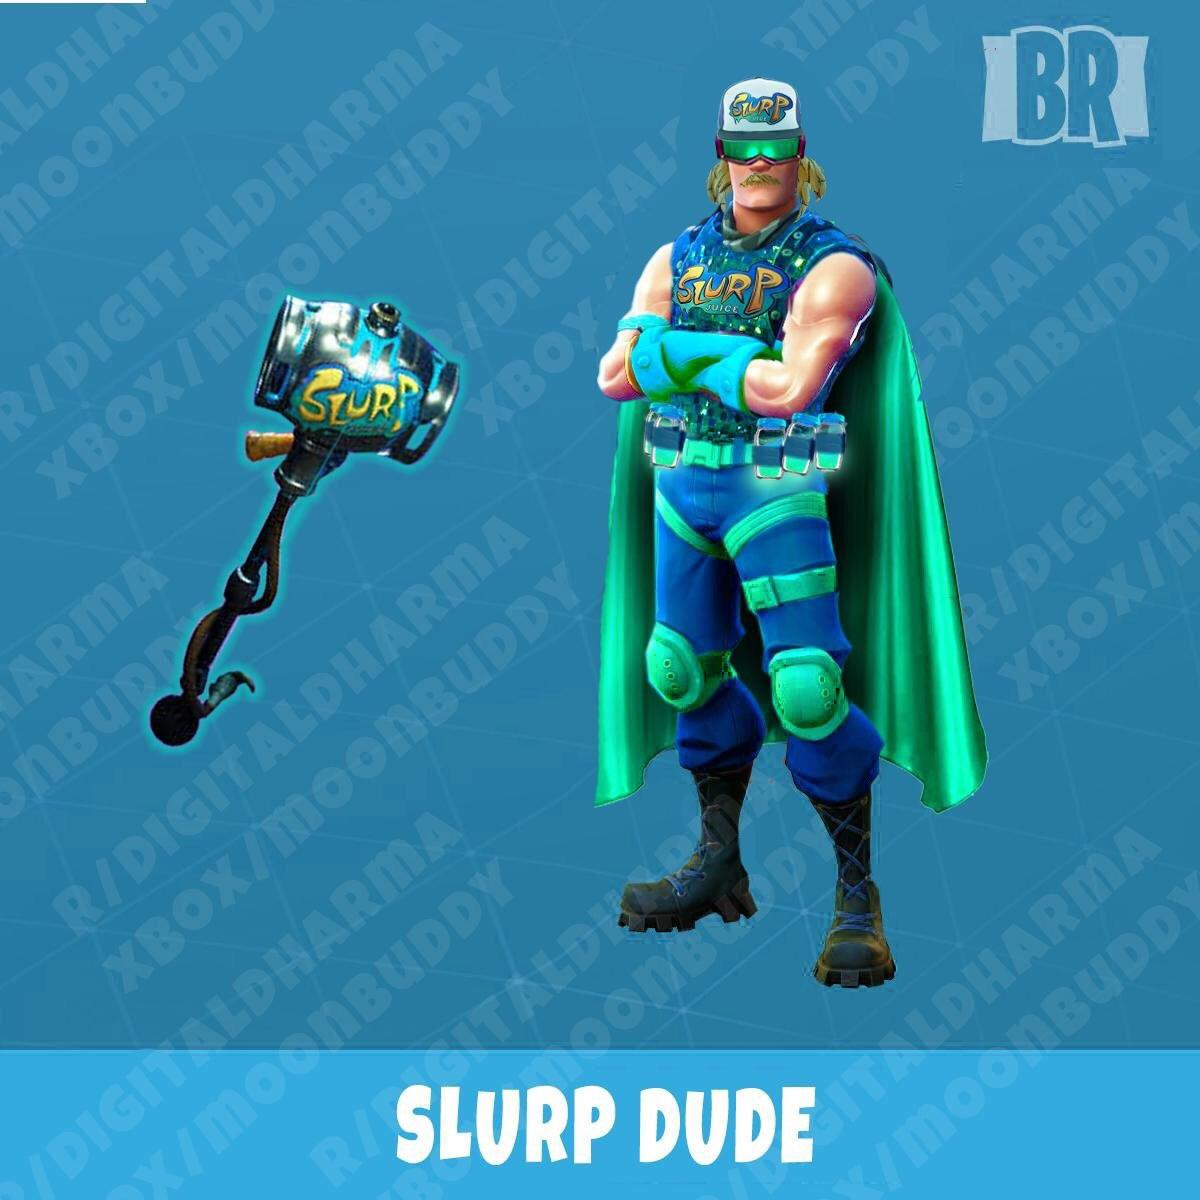 Could This Be The Outfit We Get When We Purchase The Season 4 Battle Pass Fortnite Battle Royale